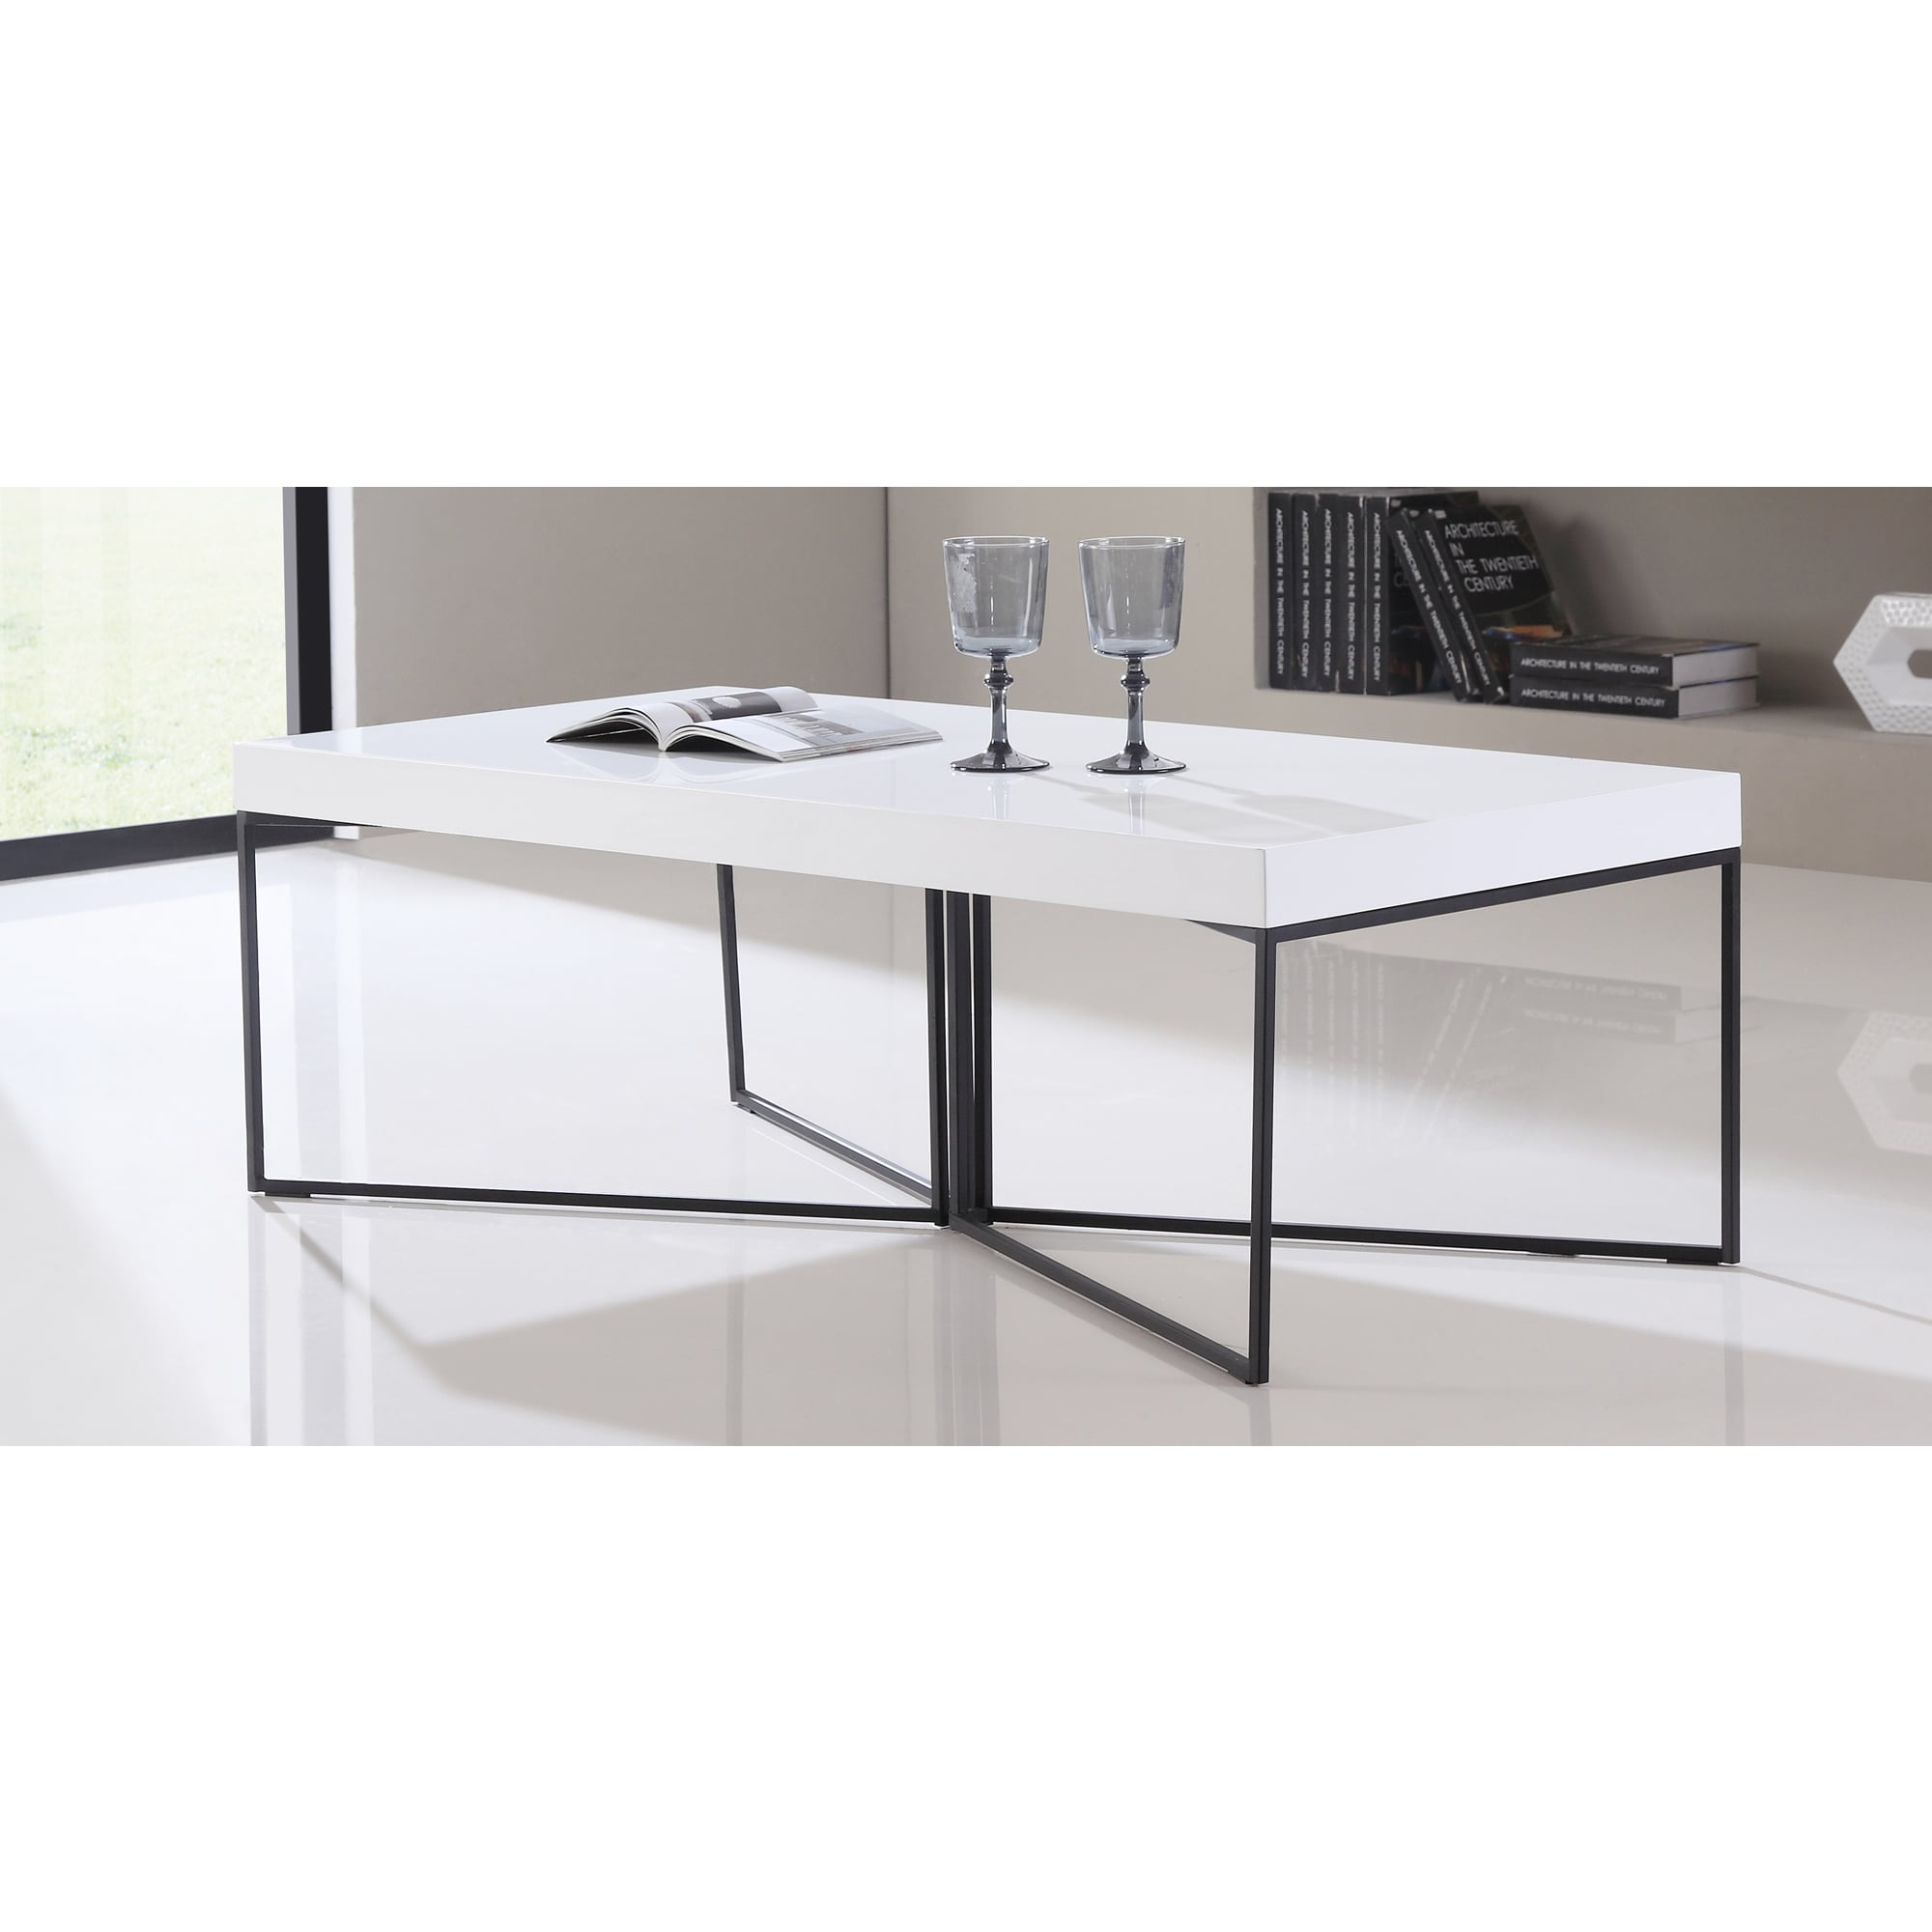 B Modern Mixer High Gloss White And Black Steel Coffee Table Free Shipping Today 17473769